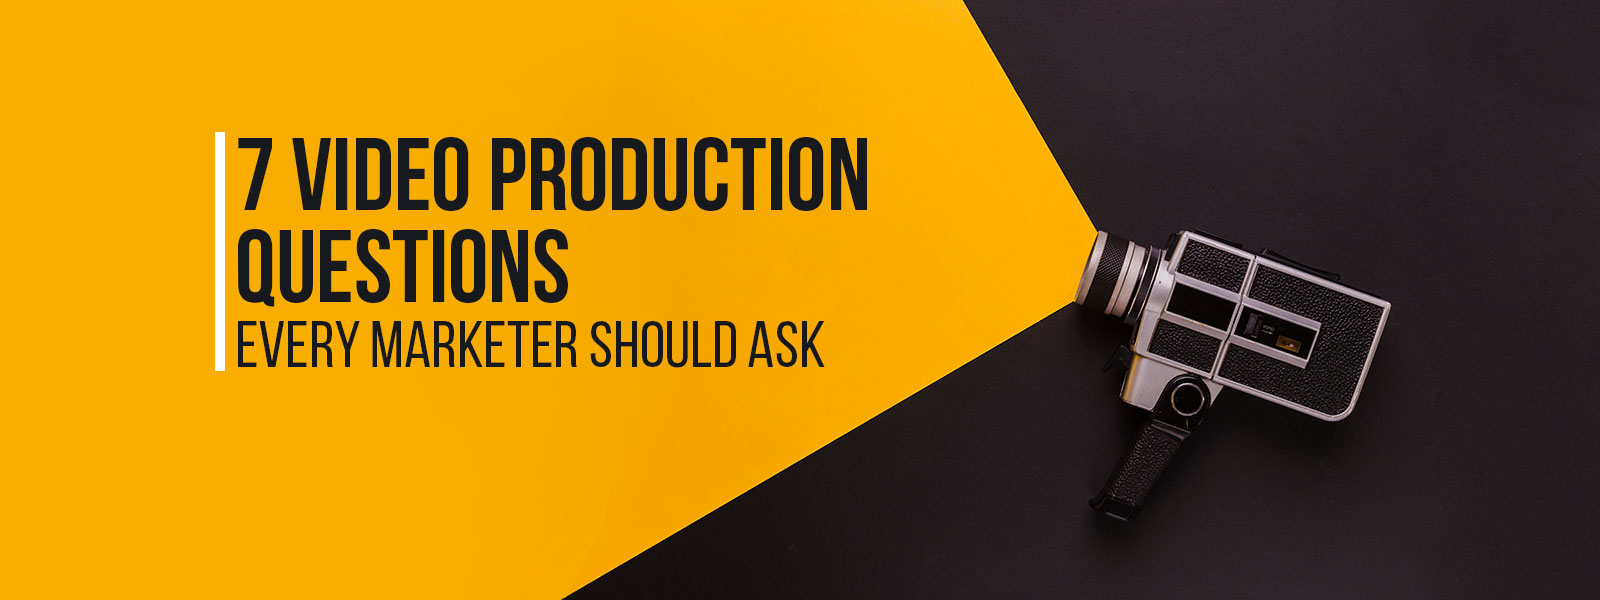 7 Video Production Questions Every Marketer Should Ask